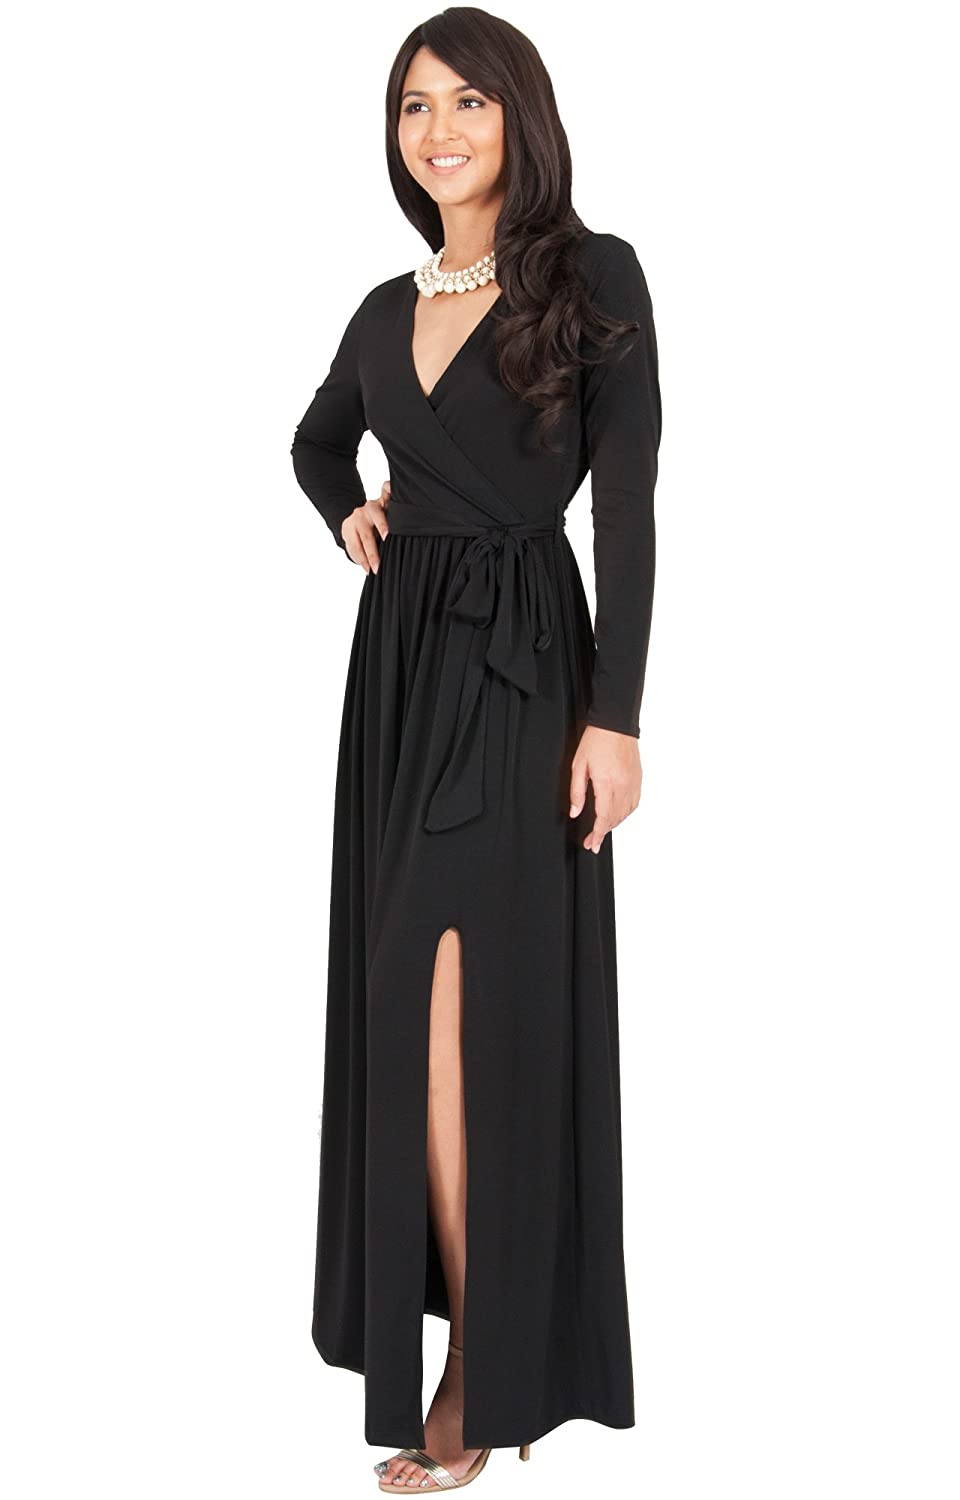 a45773d3d37 KOH KOH Womens Long Sleeve V-Neck Cross Over High Slit Cocktail Evening Gown  Maxi Dress at Amazon Women s Clothing store